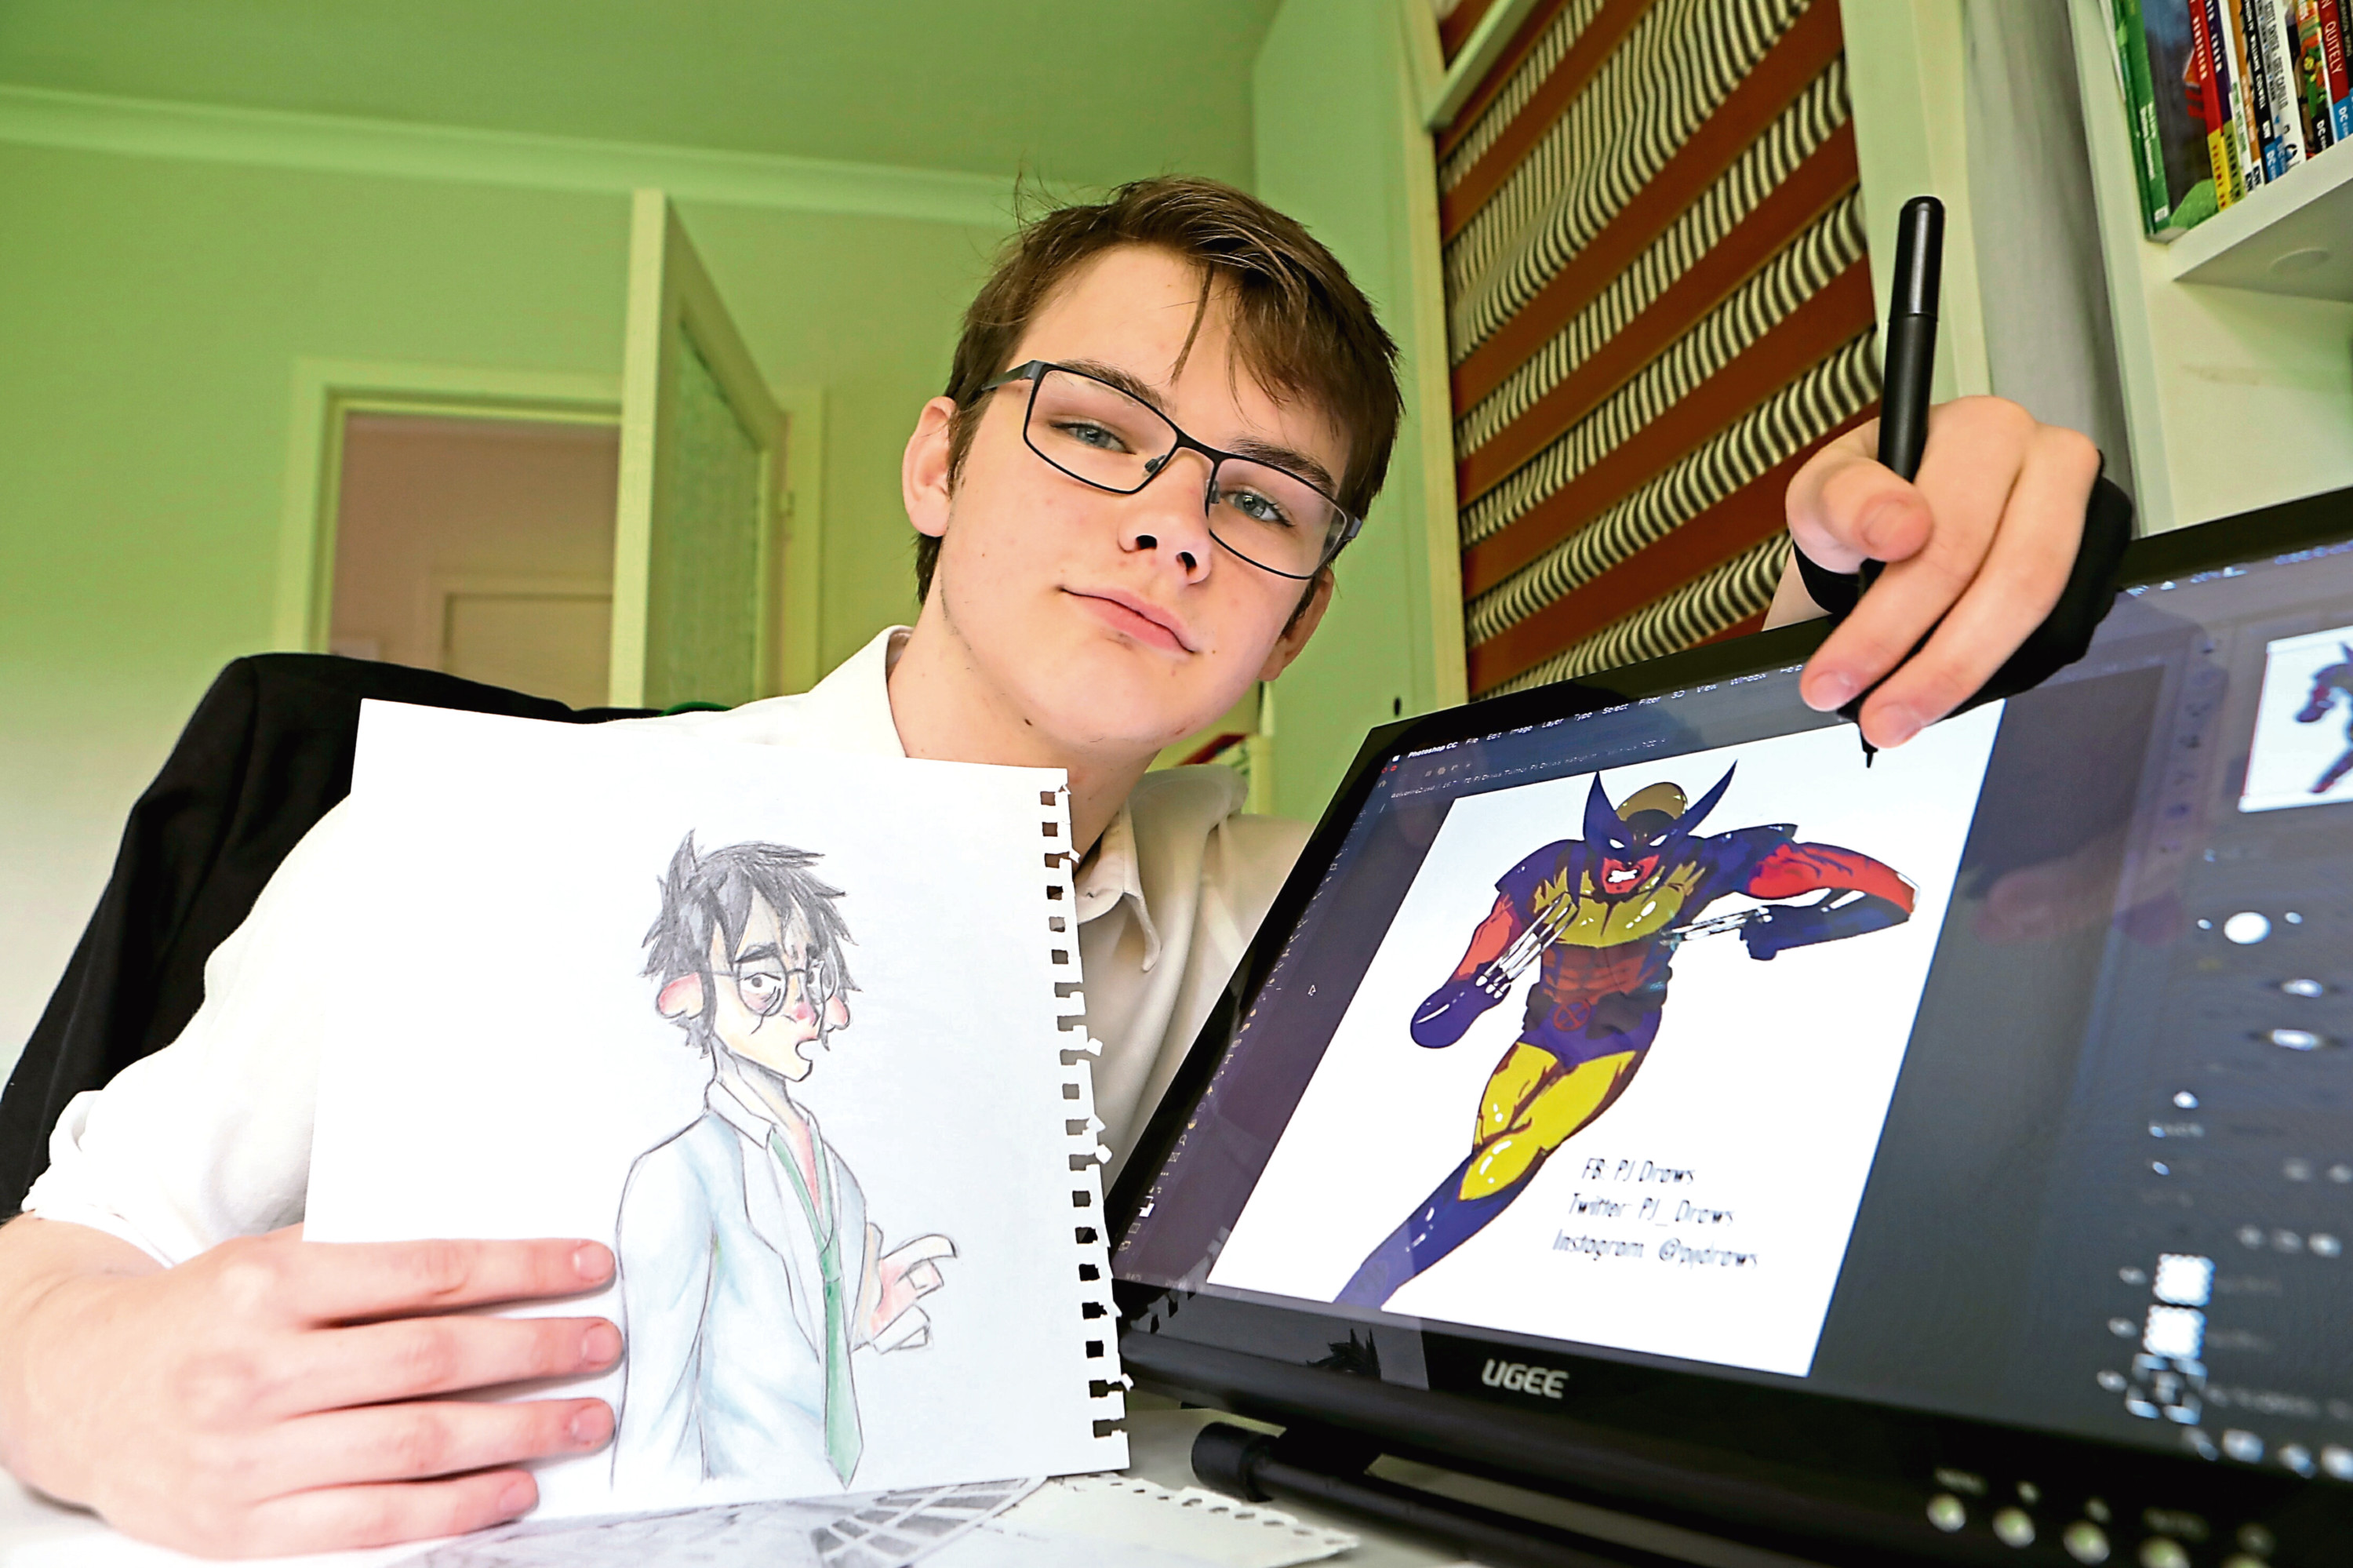 Paul Fairweather has been given a place at Duncan of Jordanstone to study art. He's seen holding some of his drawings.